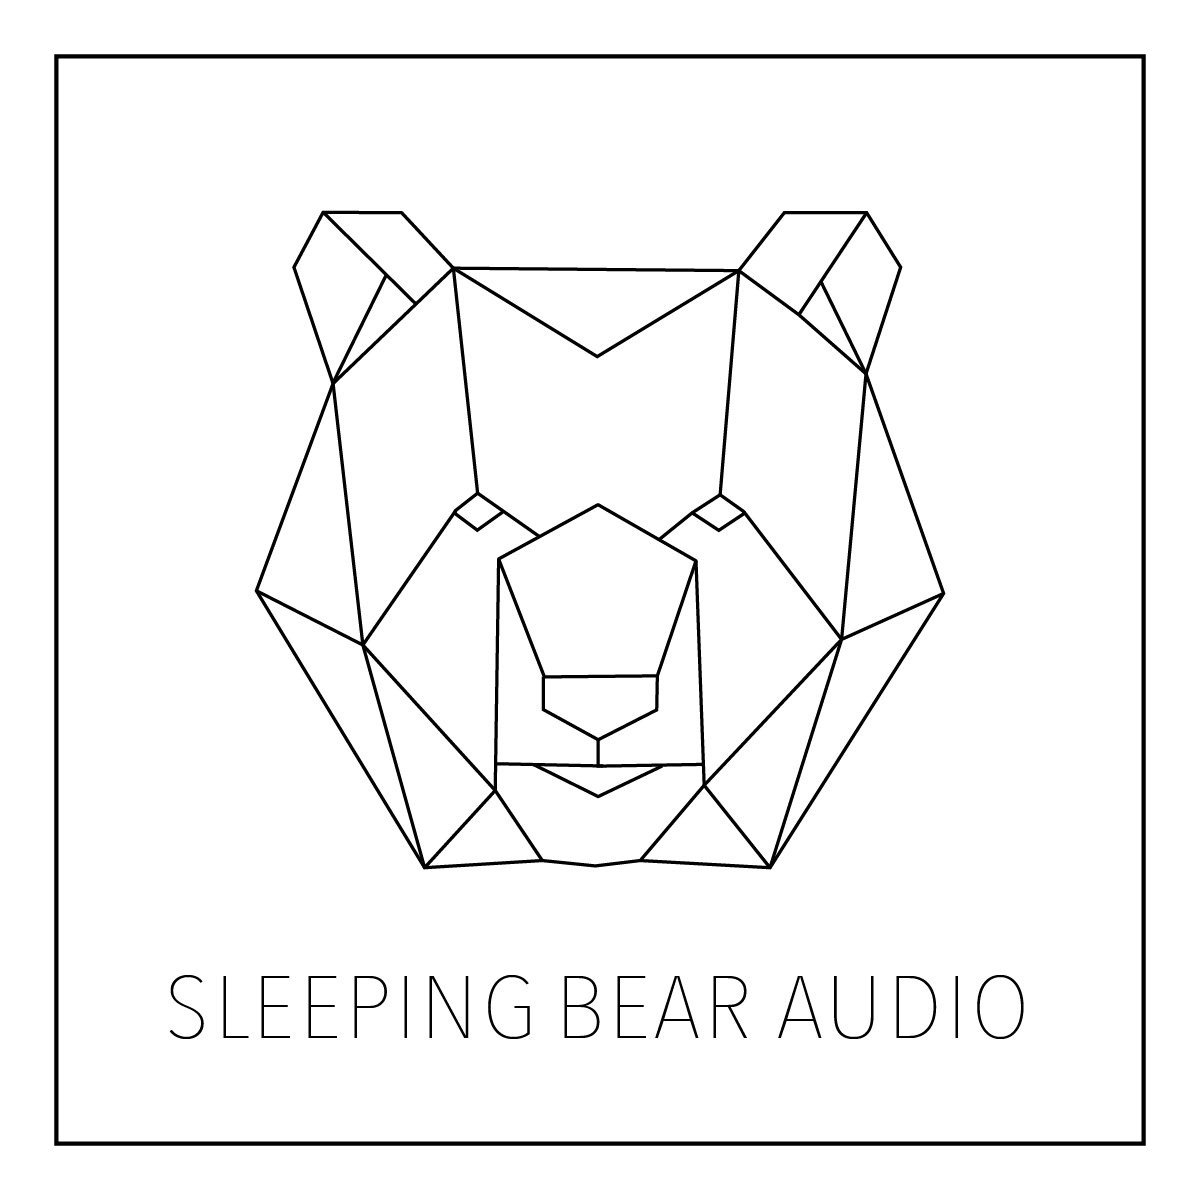 Jarrett Pryzgoda | Sleeping Bear Audio image